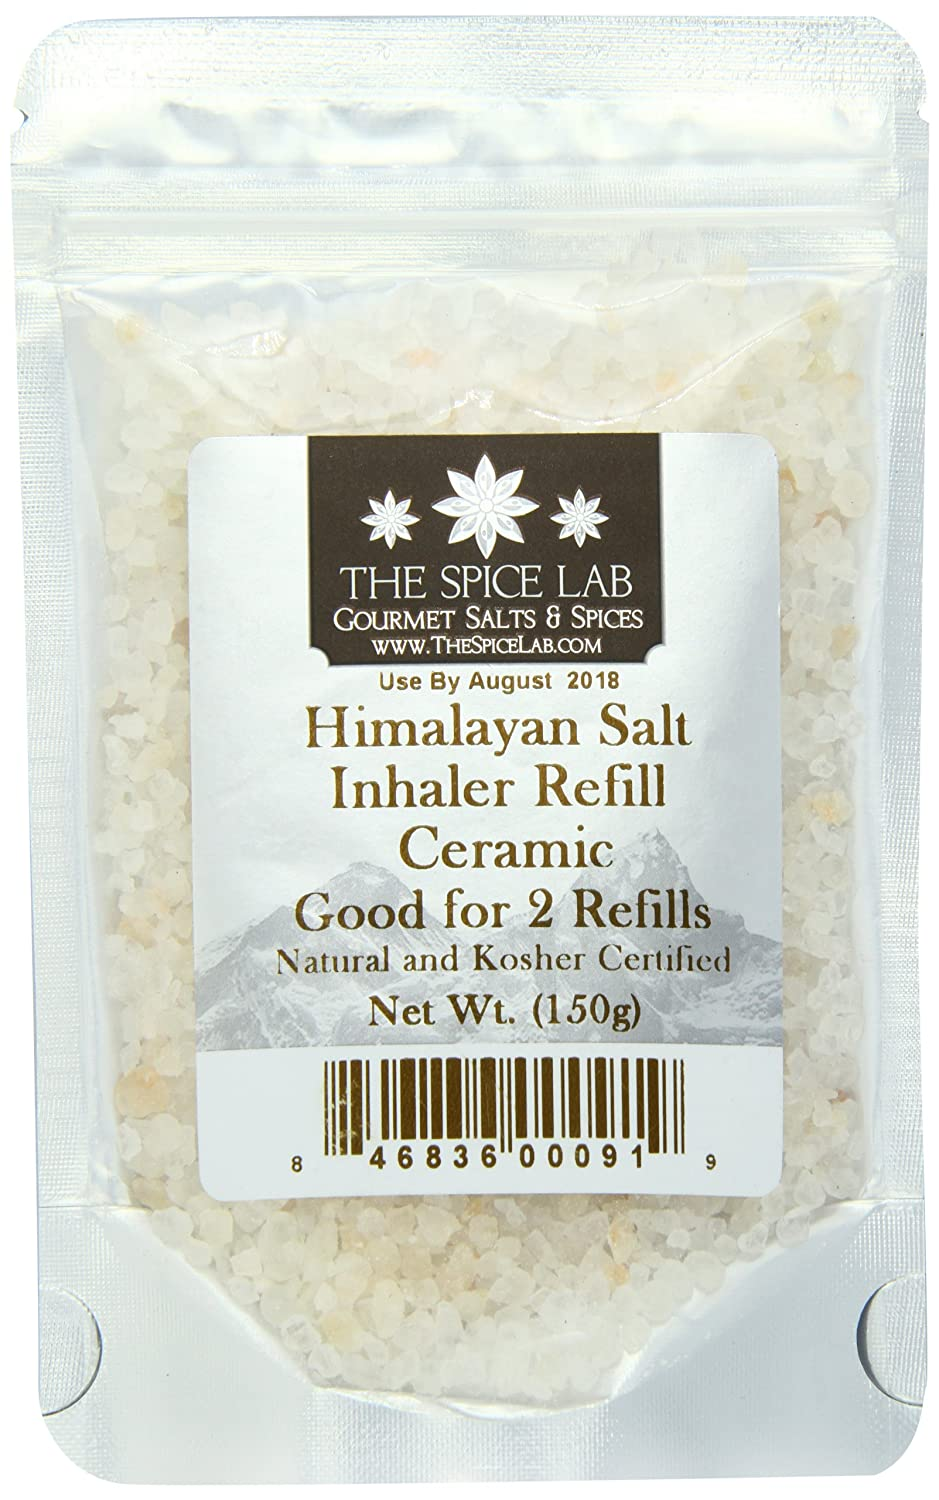 amazoncom the spice lab himalayan salt inhaler refill for ceramic inhaler health and mineral fortified 150 grams sea salts grocery u0026 gourmet